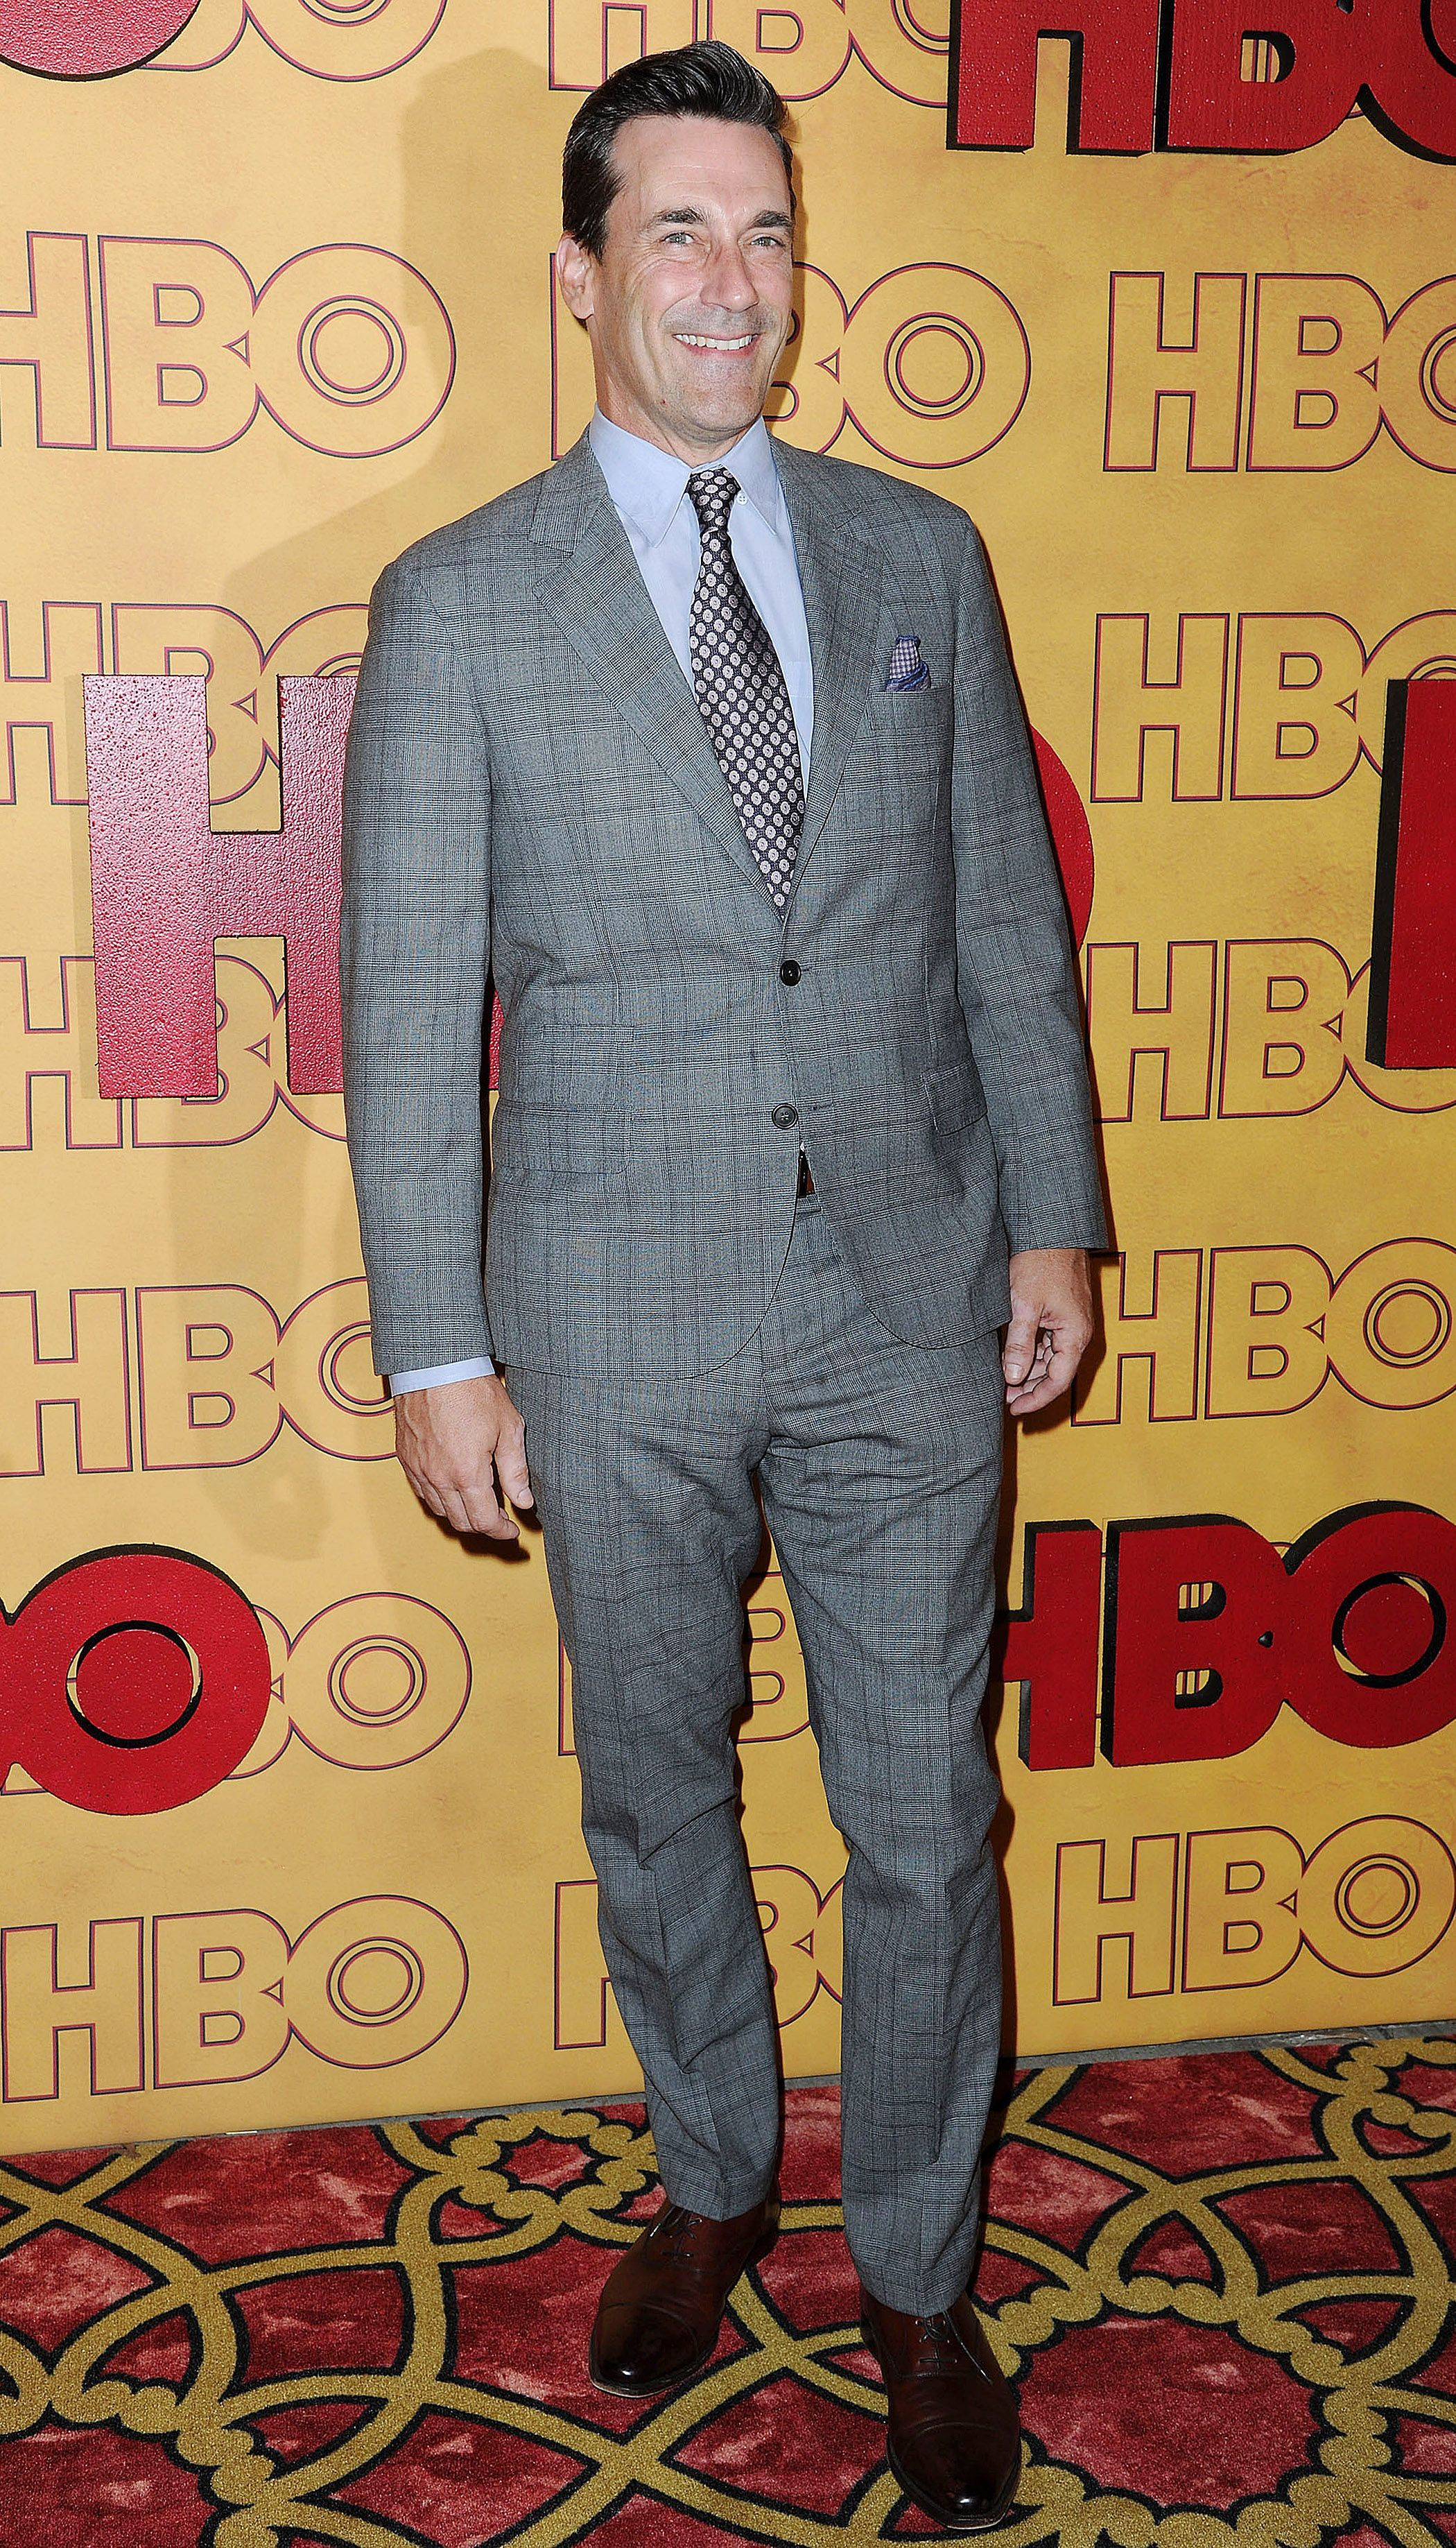 Jon Hamm attends the HBO afterparty in Los Angeles on Sept. 17, 2017.